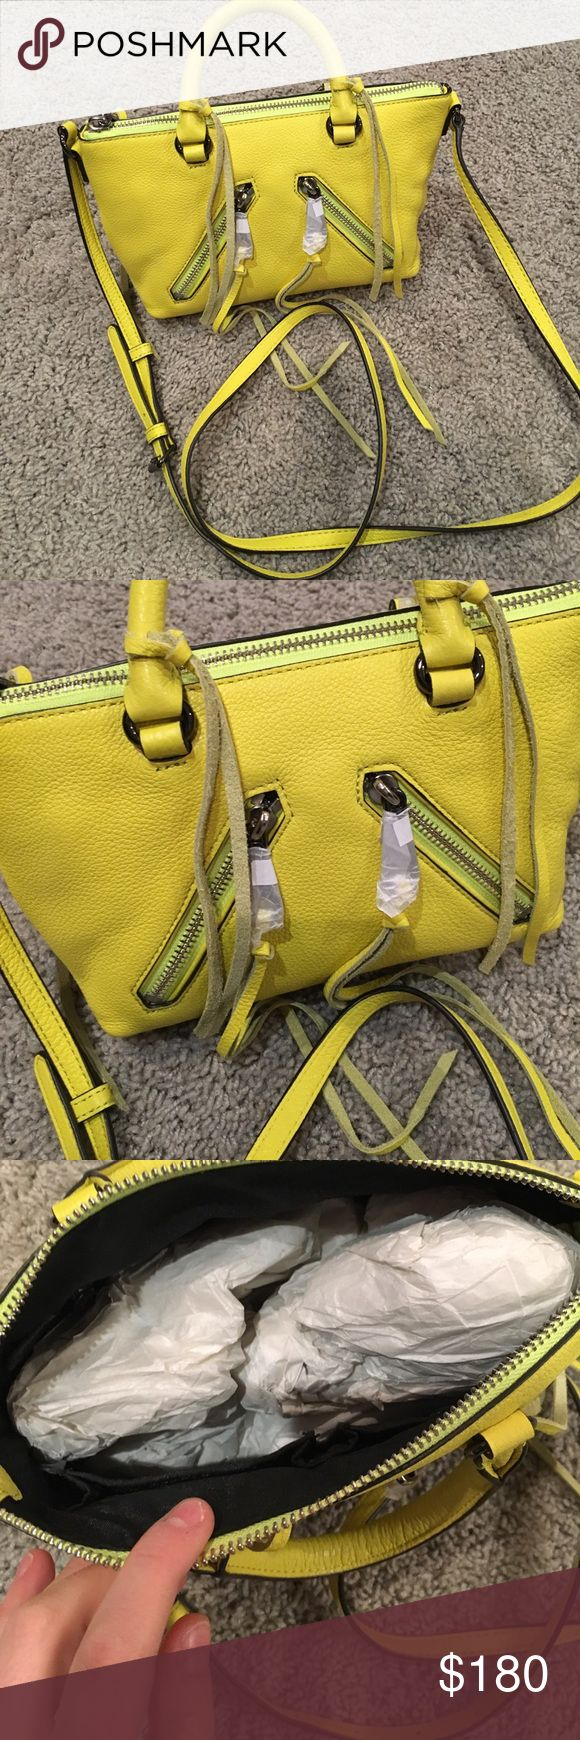 Rebecca Minkoff Mini Moto Crossbody Handbag Bright yellow Rebecca minkcoff crossbody handbag perfect for summer time! Very stylish and fun! Brand new and never used with paper still inside! 3 inside pockets and a adjustable strap! Rebecca Minkoff Bags Crossbody Bags